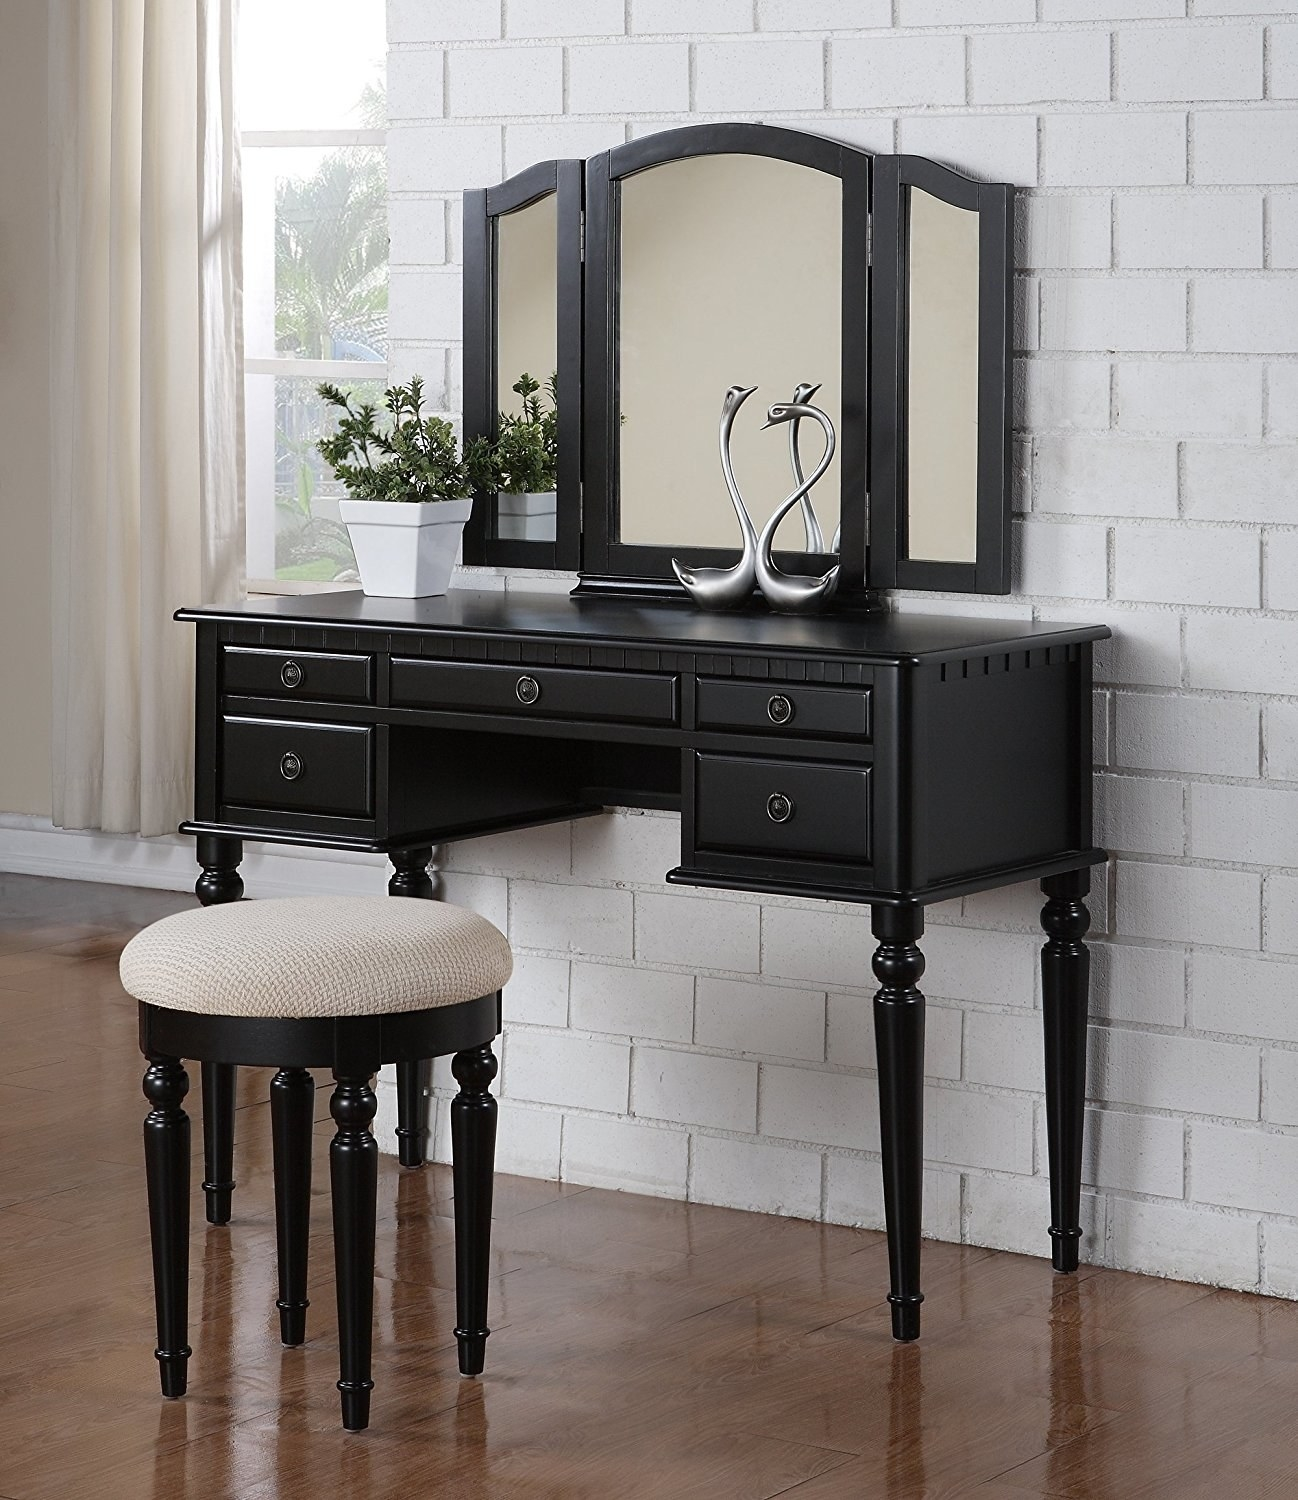 """Promising review: """"I just bought this for my 17-year old daughter and we both LOVE it! It's just the perfect size for her. The quality is top notch. It was packaged extremely well. We had no problems with dents, scratches or missing pieces. VERY easy to assemble. The desk and drawers are one piece. All you have to do is screw in the legs and attach the mirror to the back. Very simple. The chair is a nice size and very sturdy. I am very, very impressed. Great purchase and I recommend this vanity set."""" —ChristinaPrice: $239.04 (available in three colors)"""